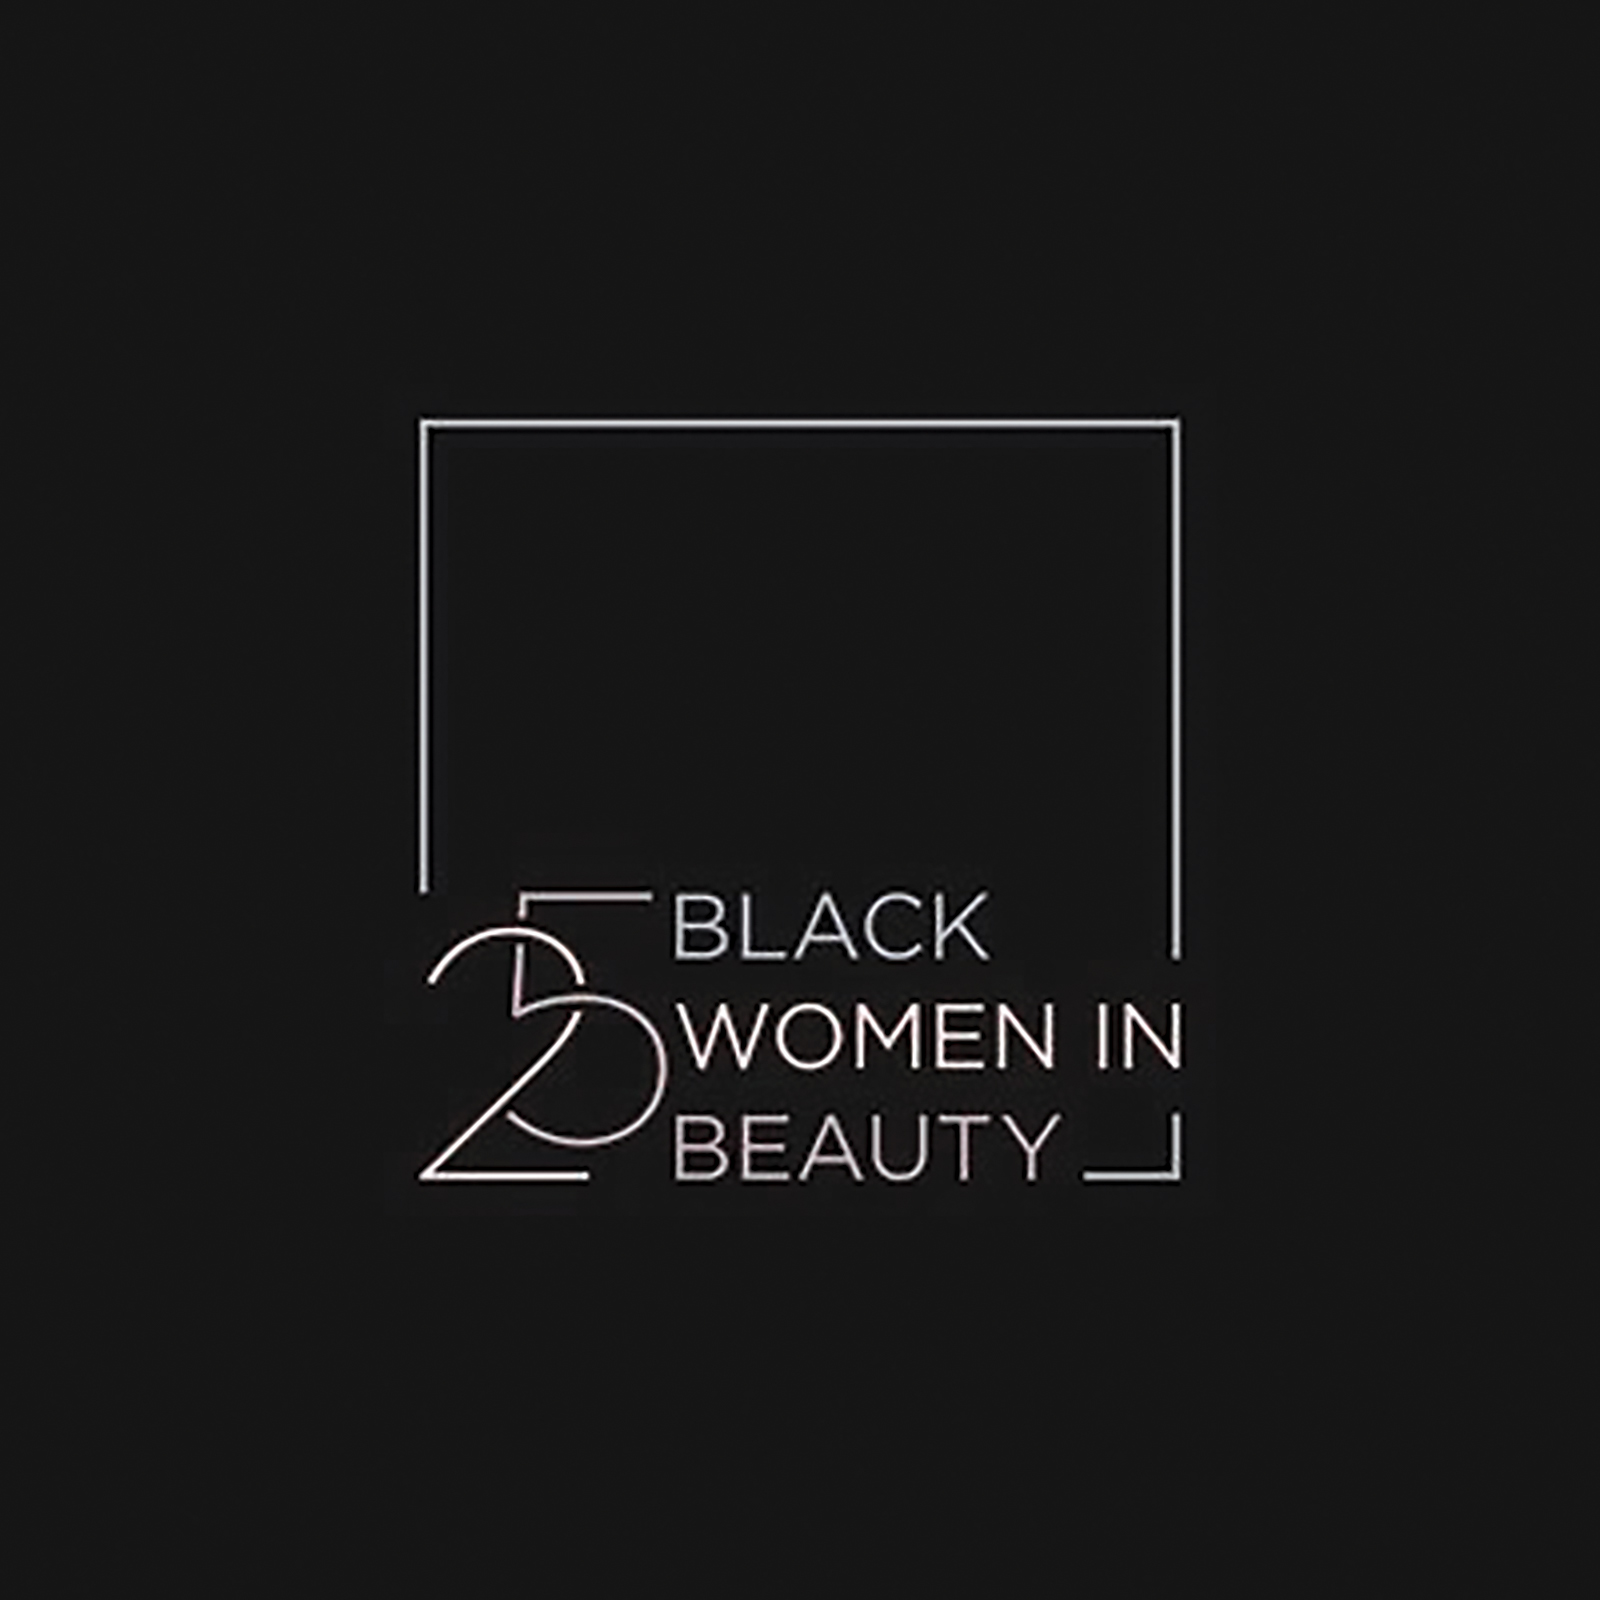 '25 Black Women in Beauty' Launches to Celebrate Black Women Professionals, Entrepreneurs and Influencers in the Beauty Industry pic 2.jpg